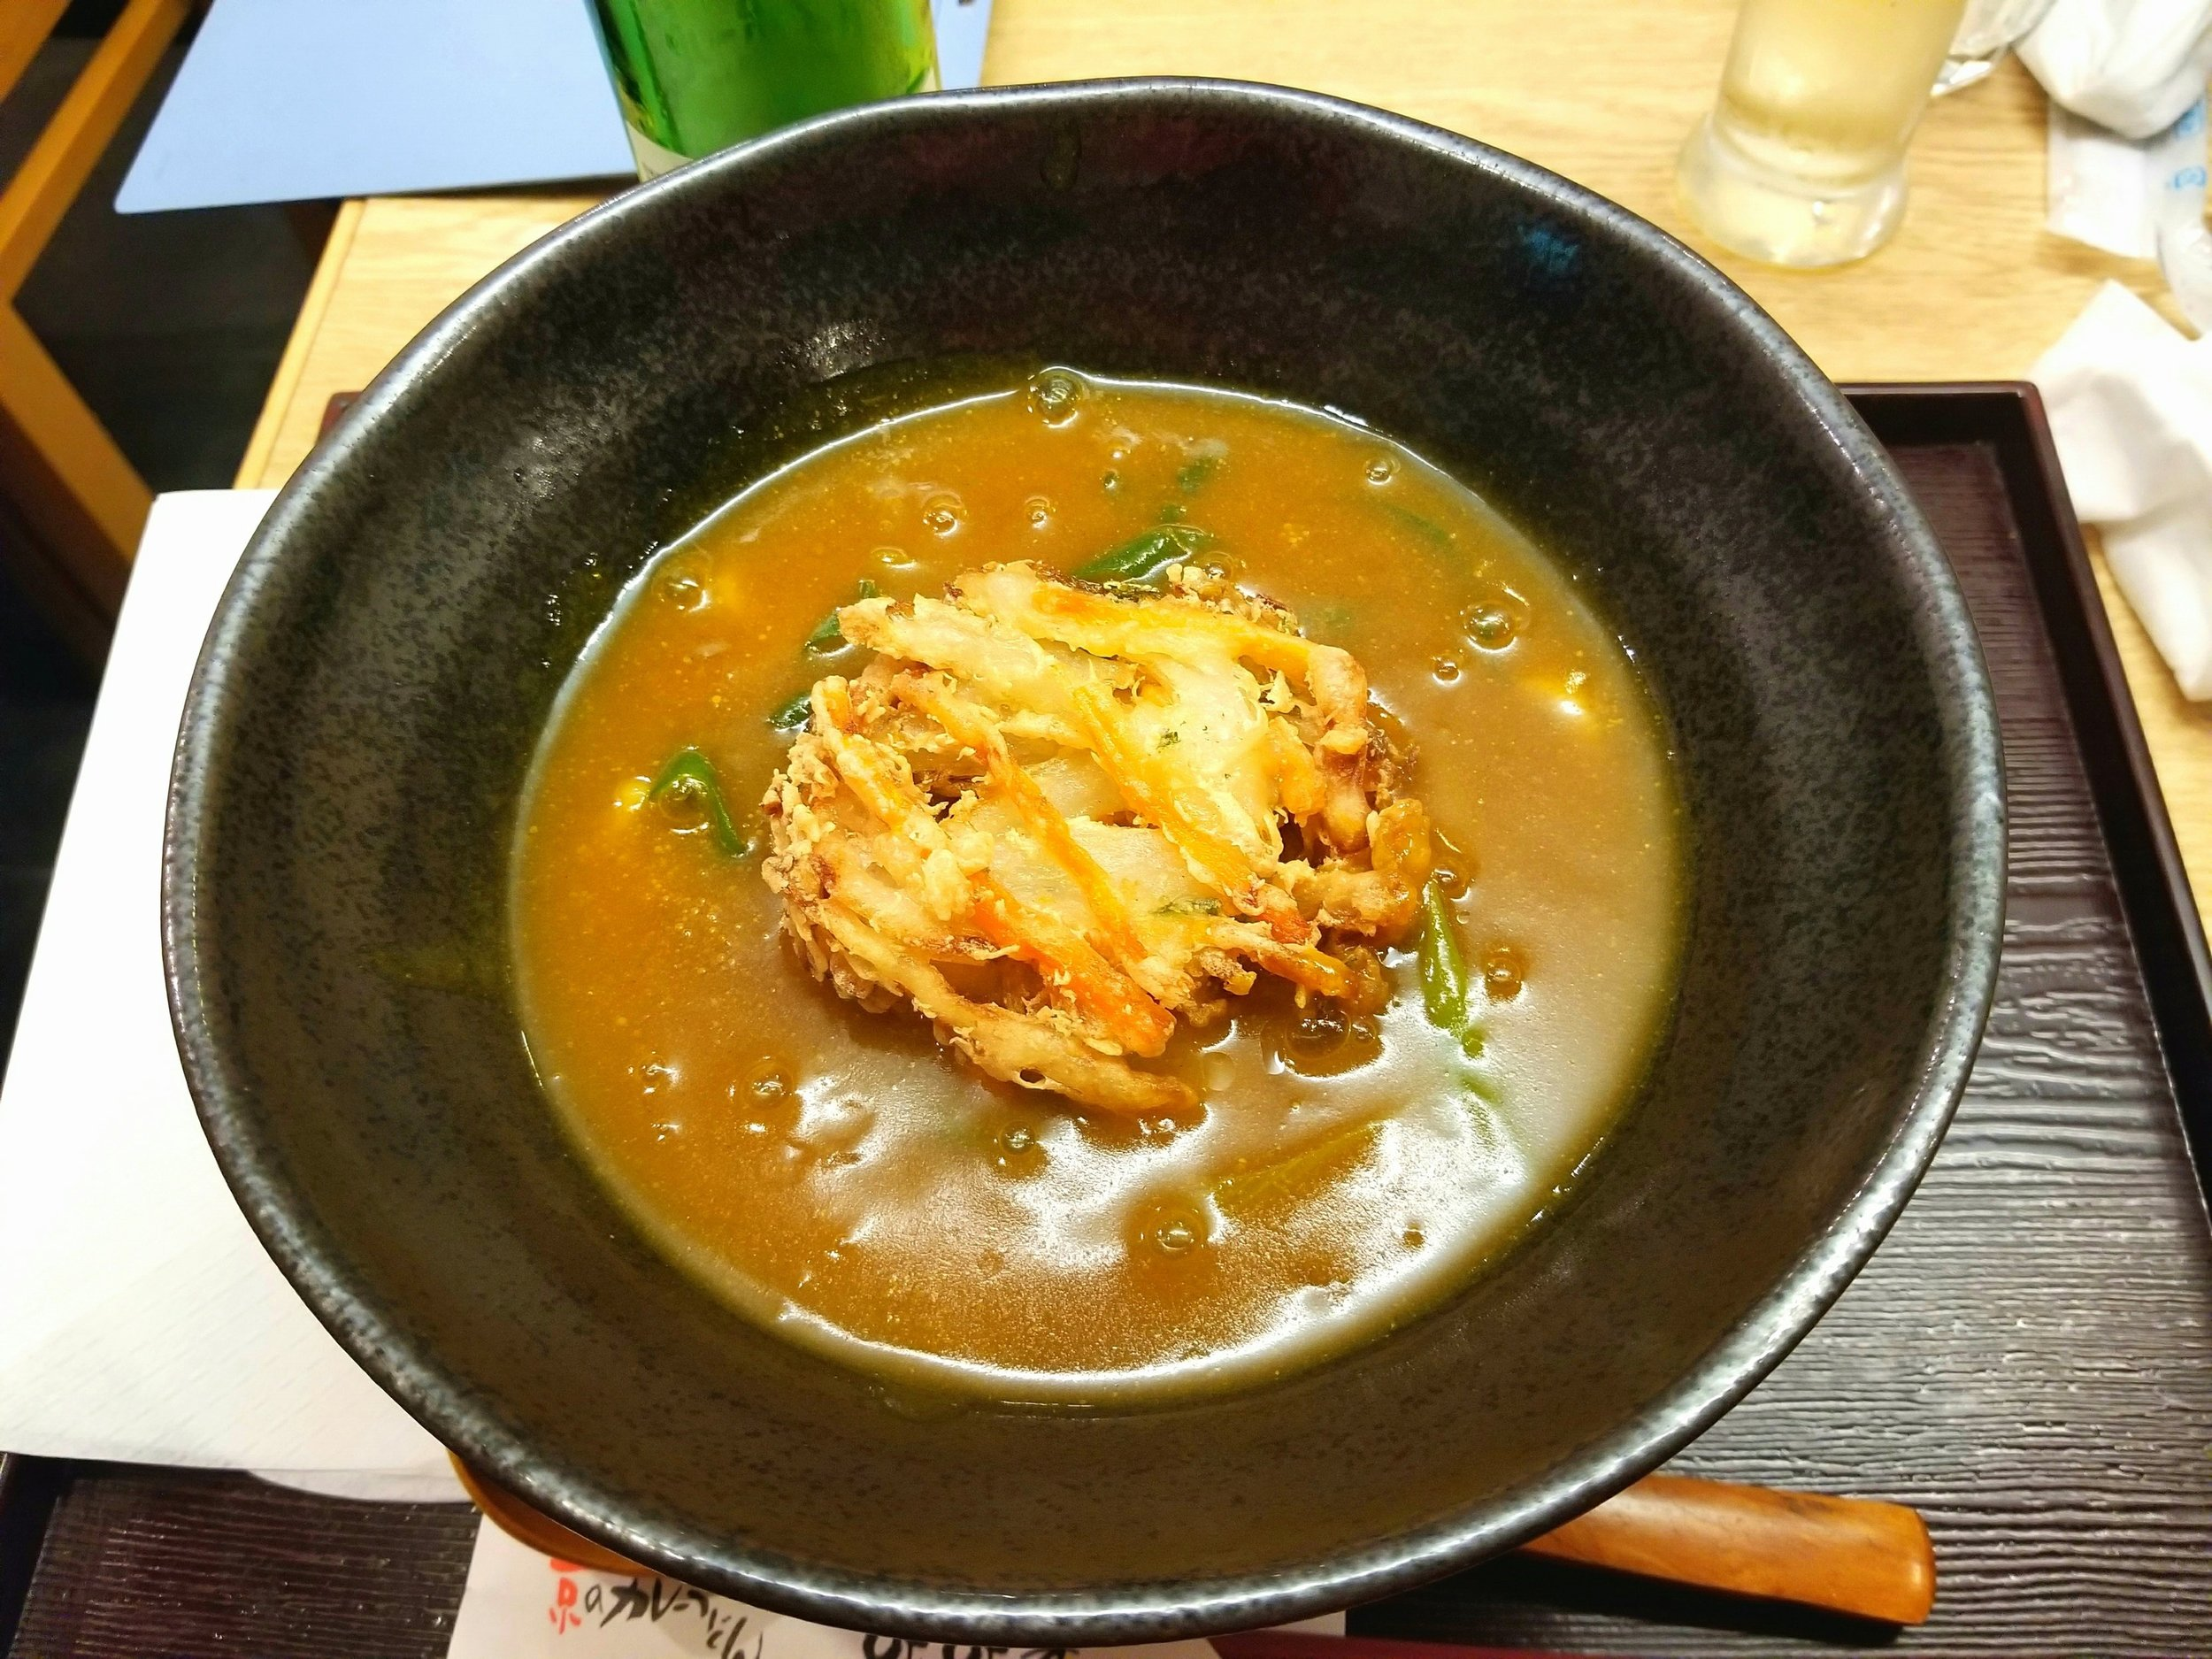 uprooted-traveler-curry-udon-ramen-mimikou-vegan-guide-kyoto